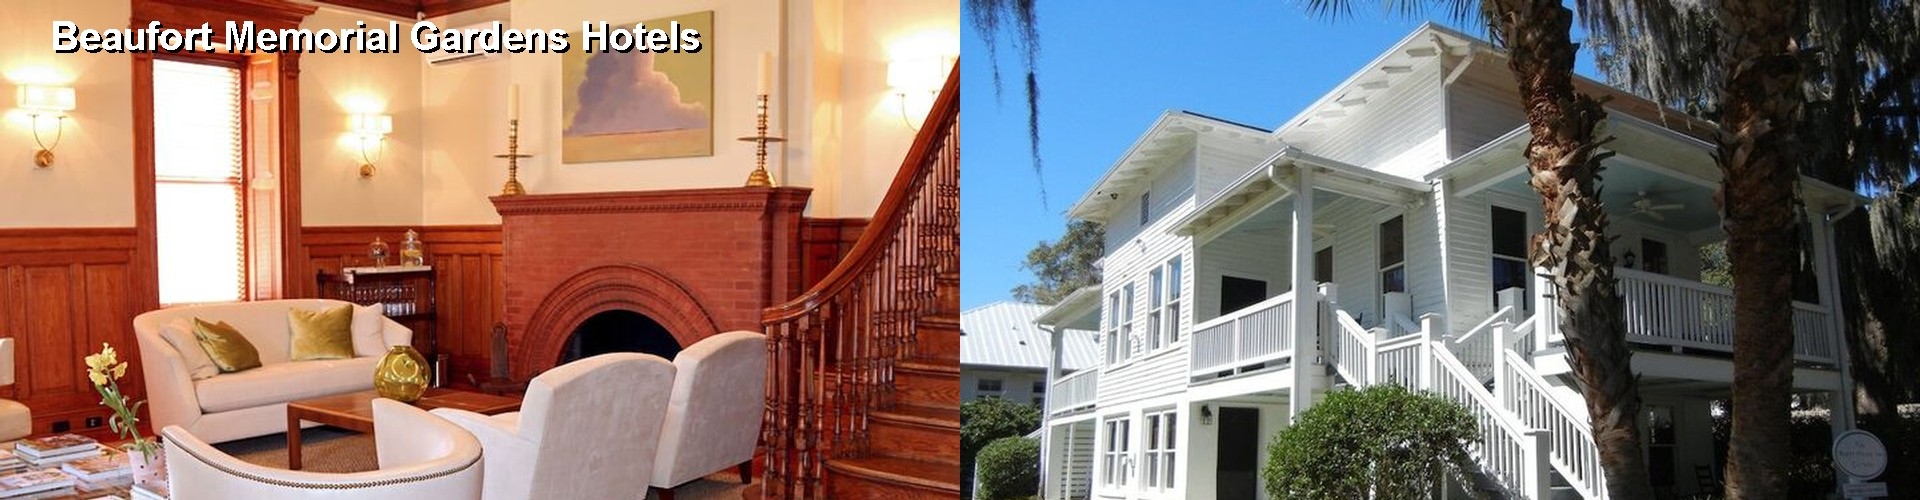 5 Best Hotels near Beaufort Memorial Gardens